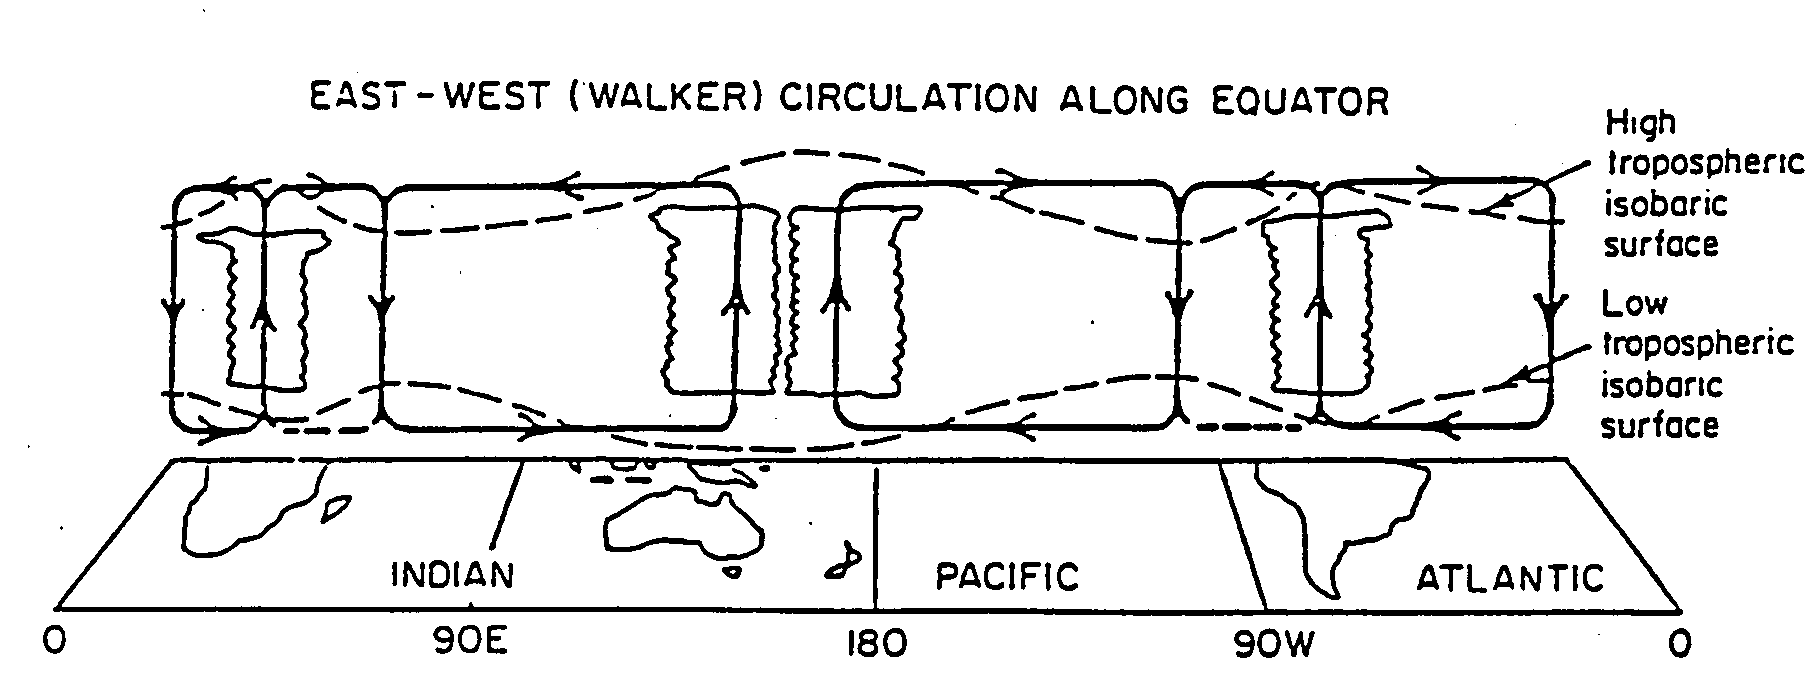 Lectures on tropical meteorology schematic diagram of the longitude height circulation along the equator the surface and 200 mb pressure deviations are shown as dashed lines pooptronica